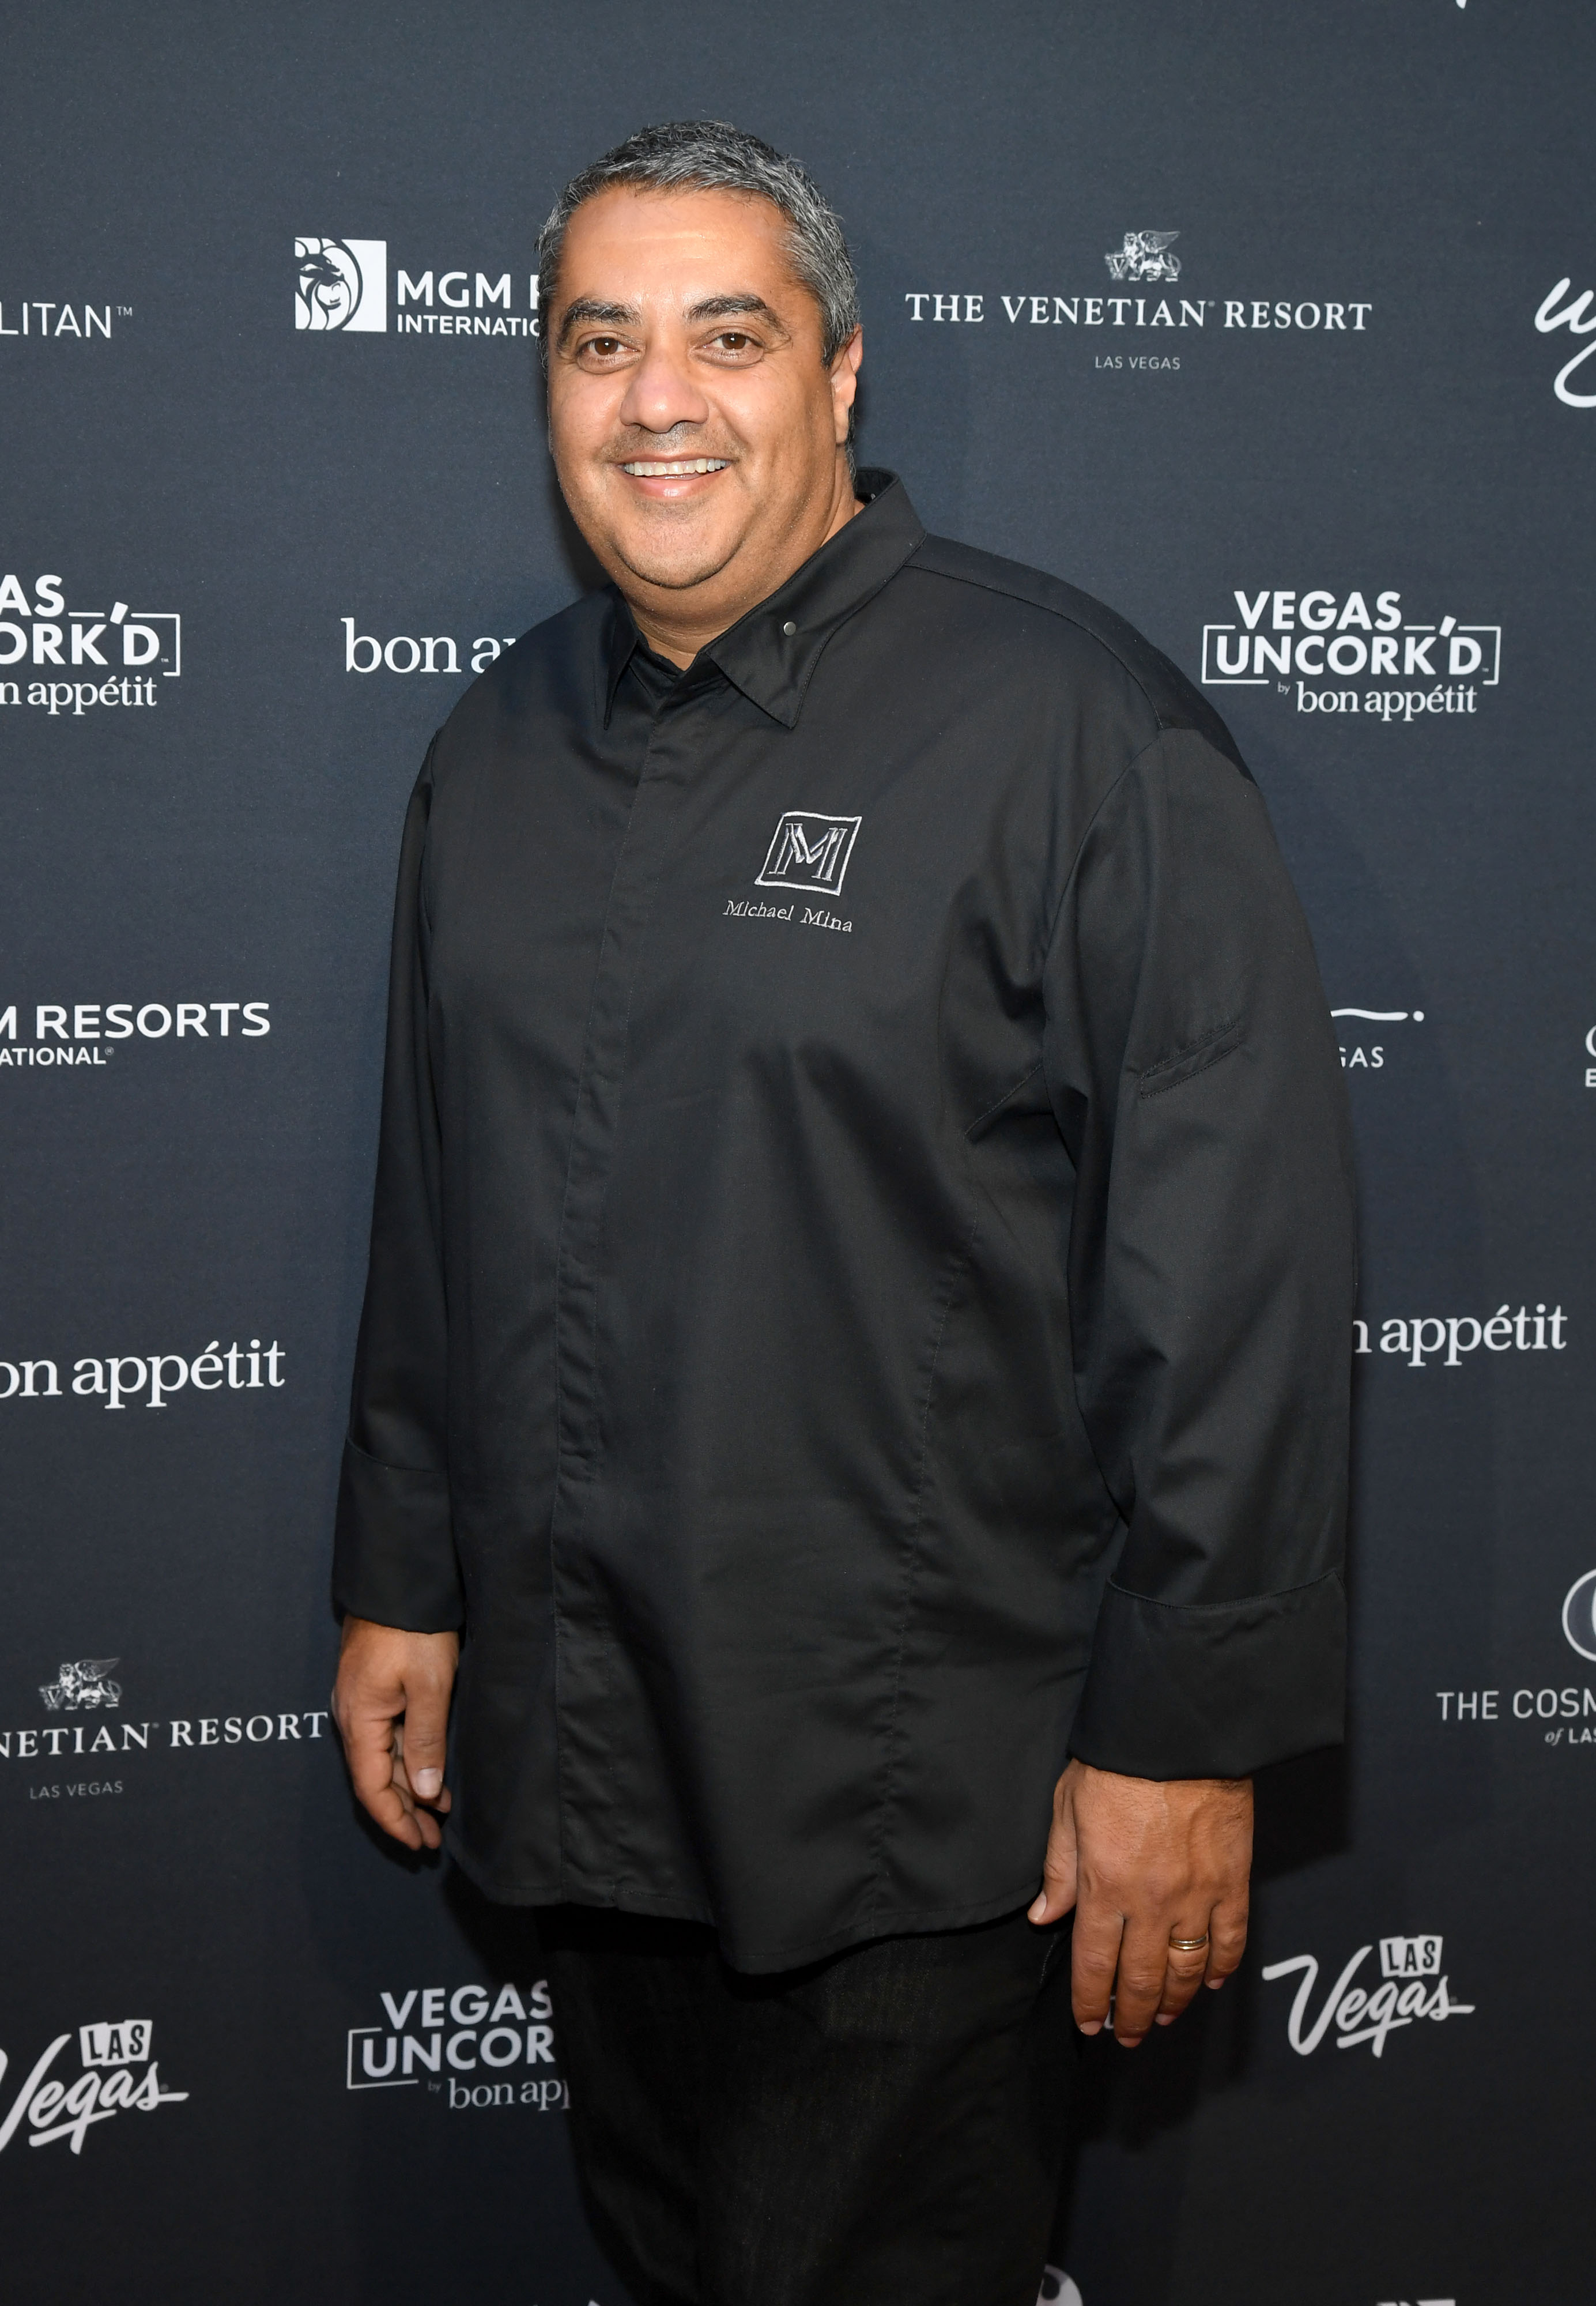 Chef stands in front of a step-and-repeat wearing black coat.